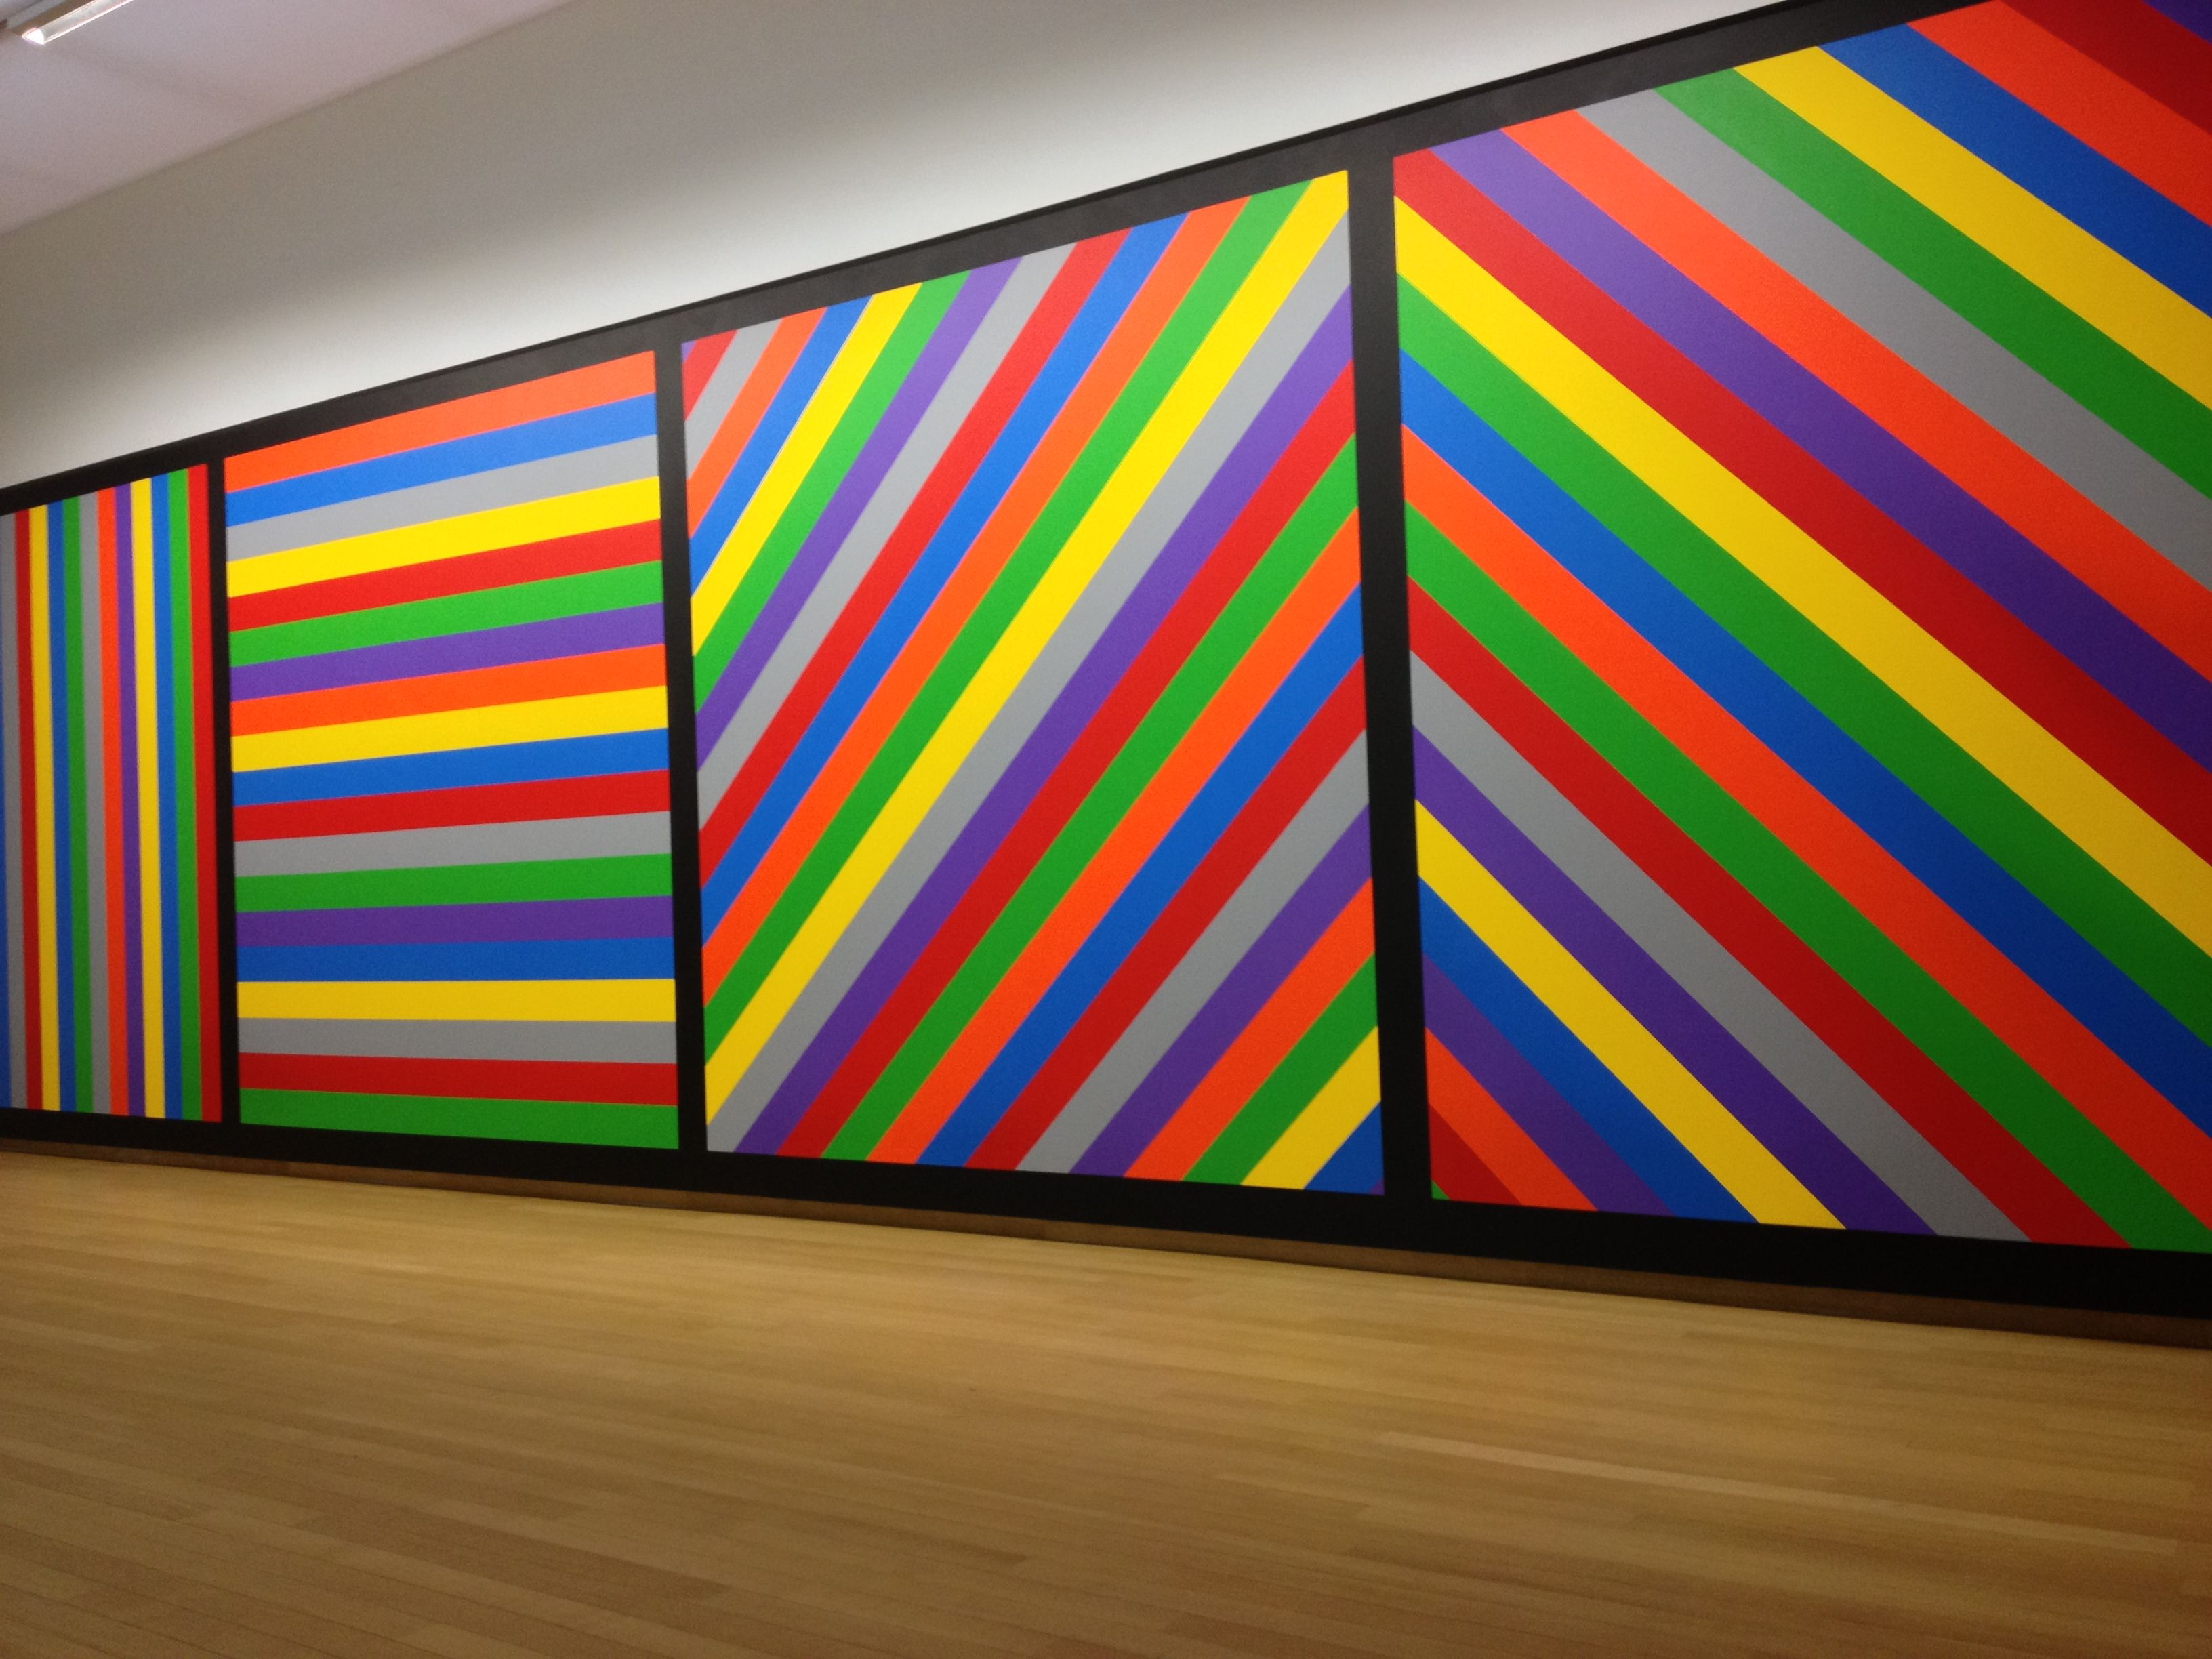 essay on sol lewitt Solomon sol lewitt was the only child of russian jewish parents his family lived in hartford, connecticut until his father, a doctor, died when sol was six years old thereafter, lewitt and his mother, a nurse, lived with his aunt in new britain, connecticut.